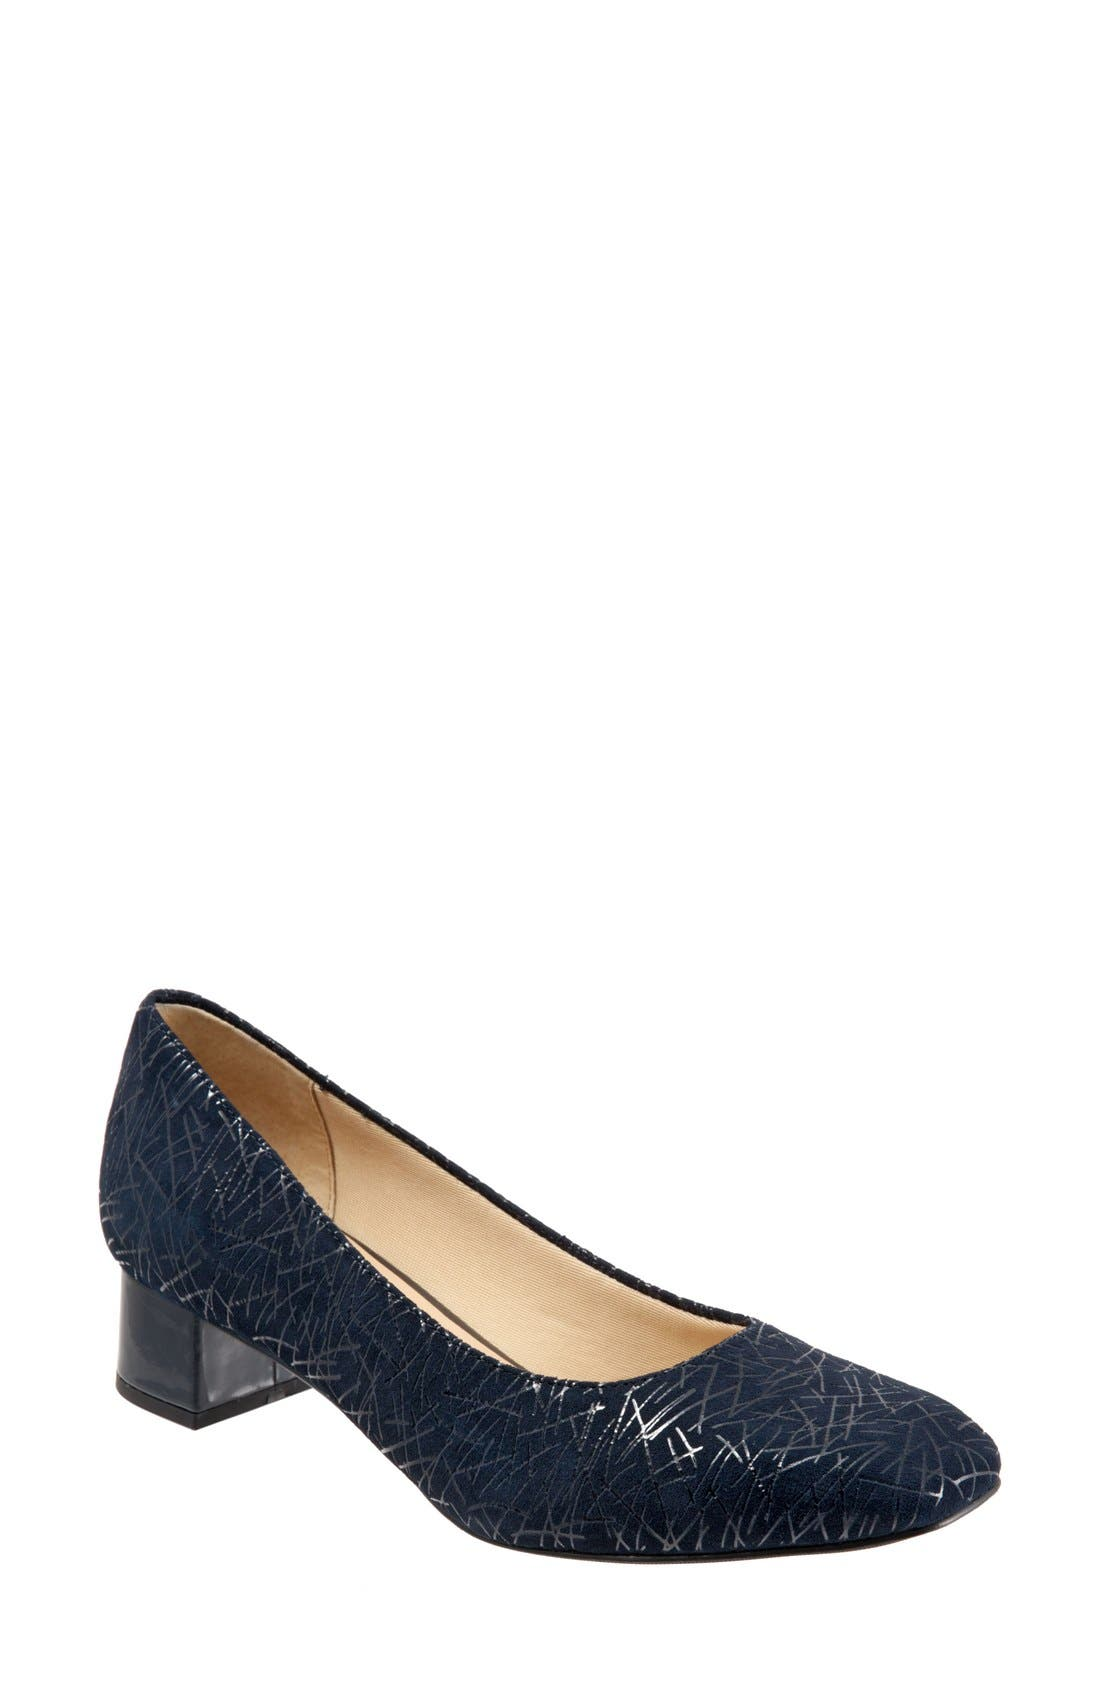 'Lola' Pump,                         Main,                         color, Navy Embossed Leather